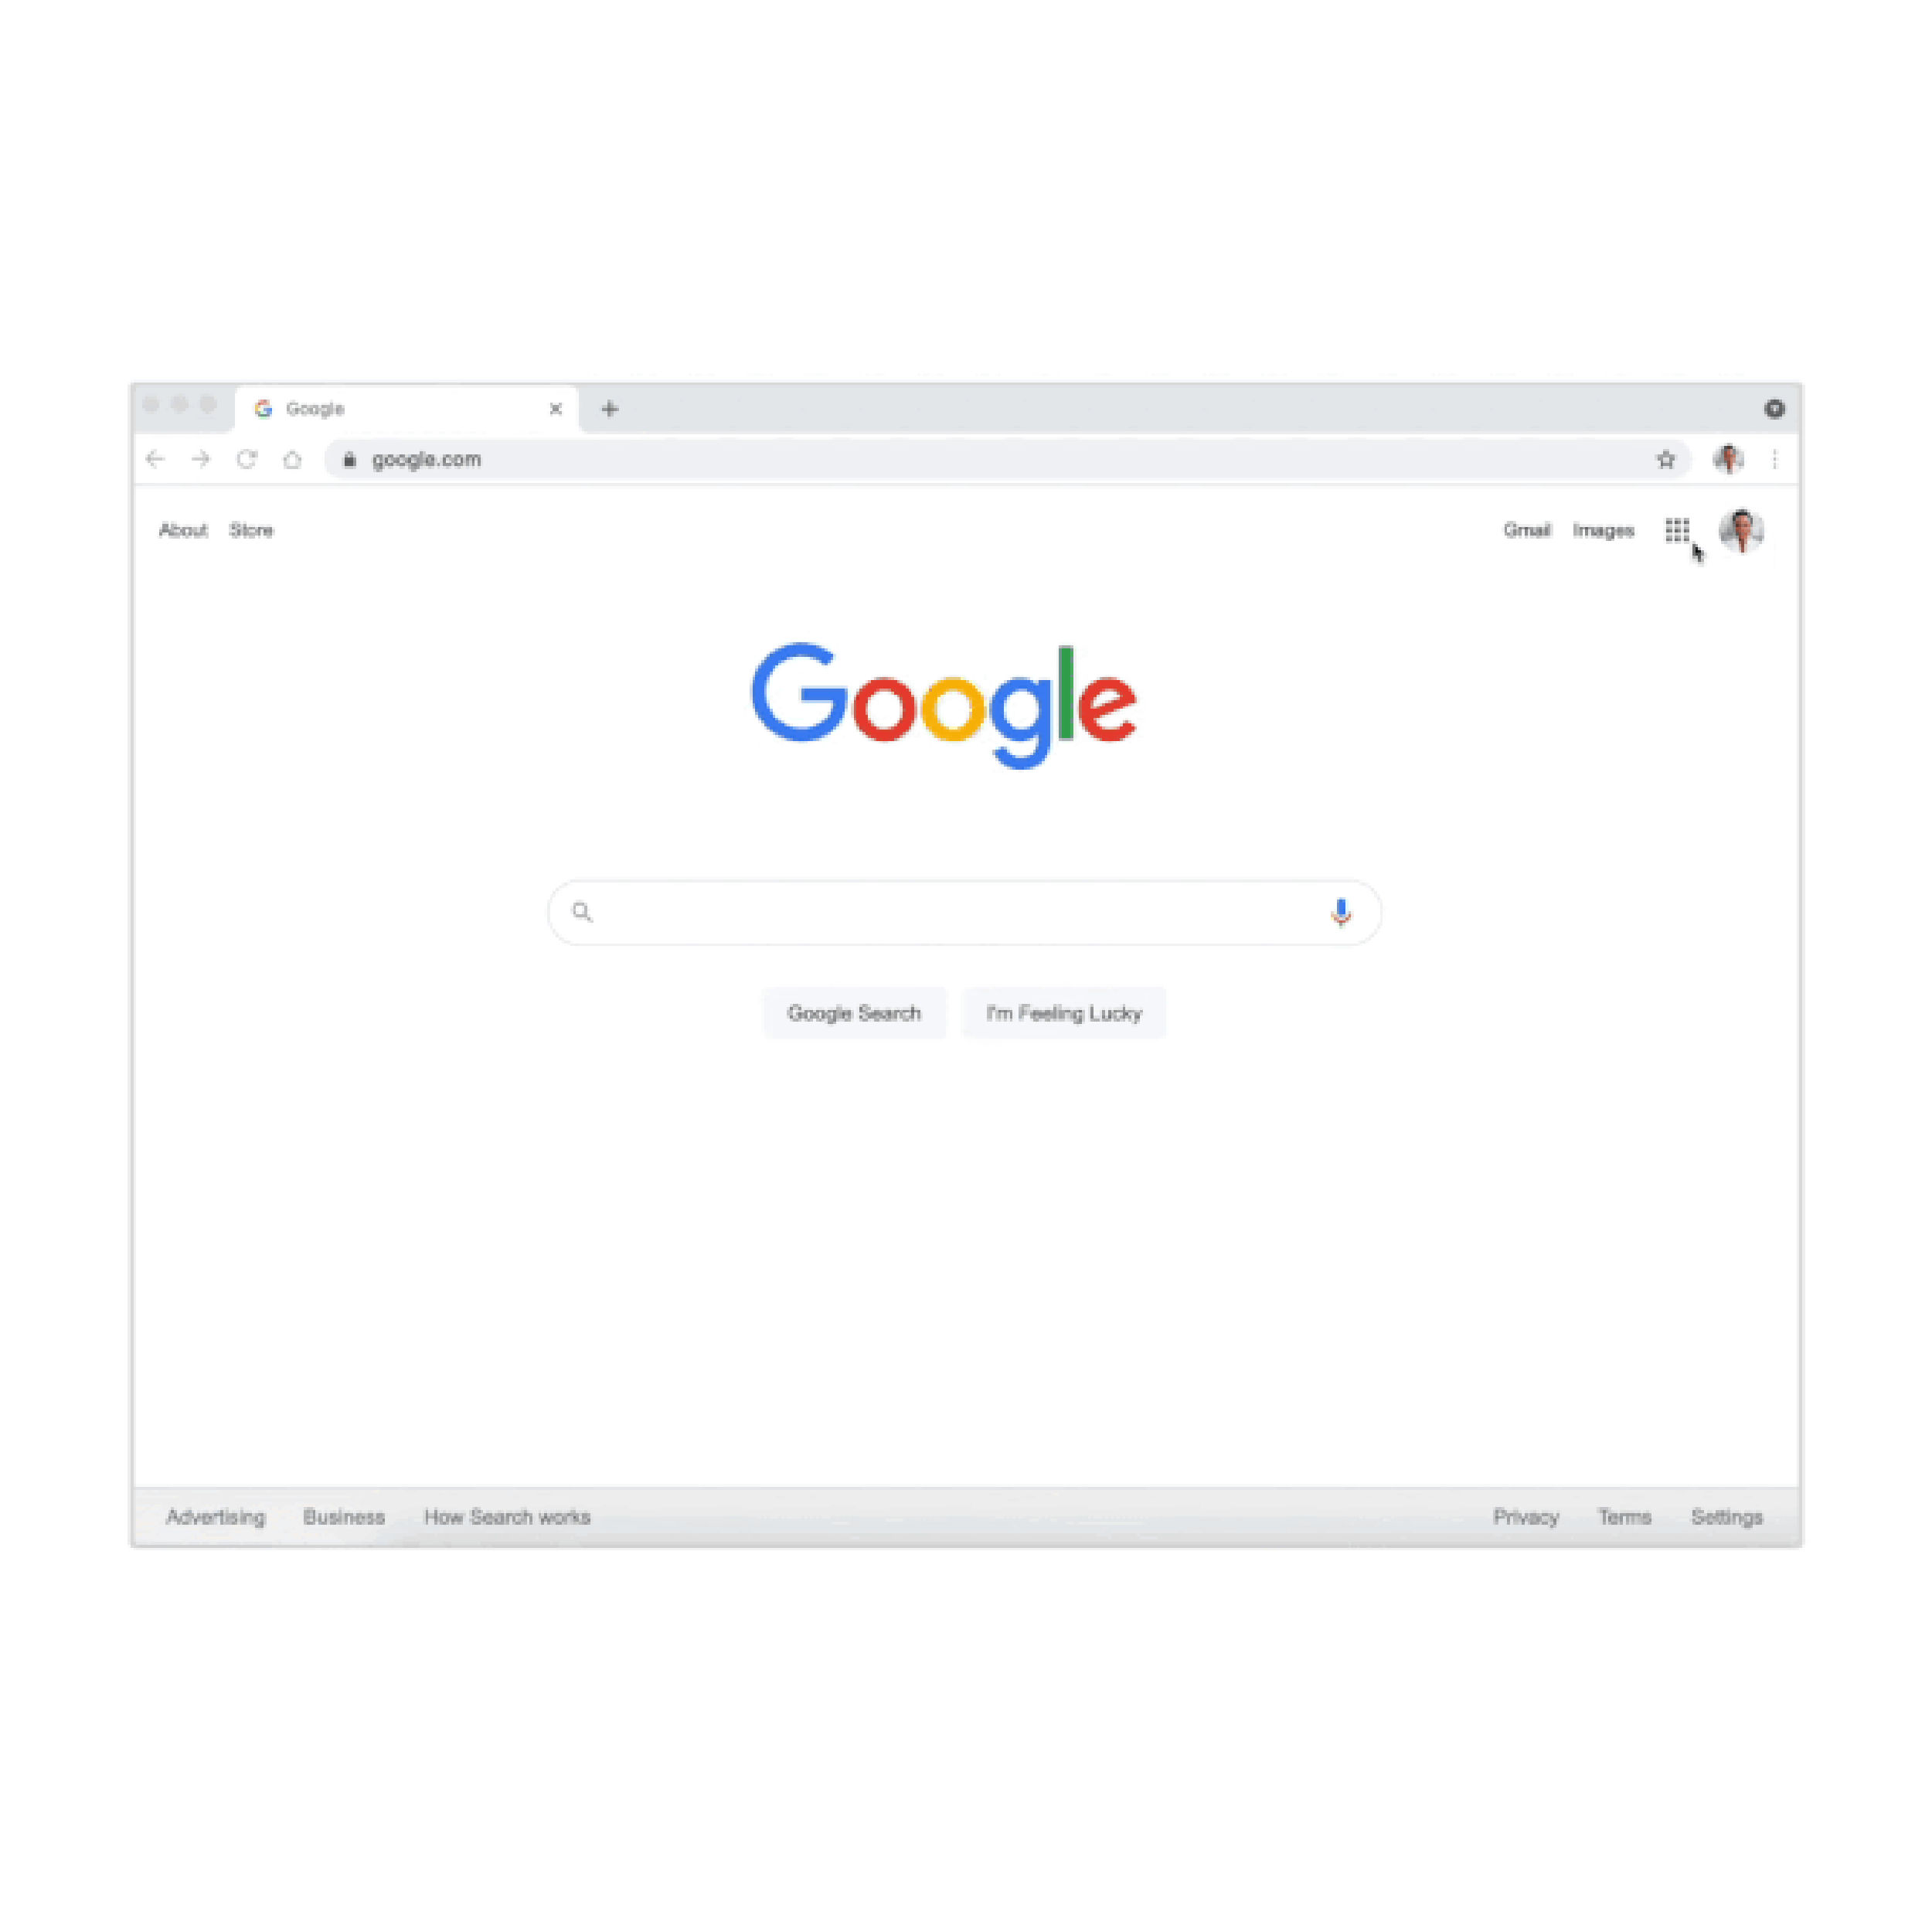 Chrome 88 password check